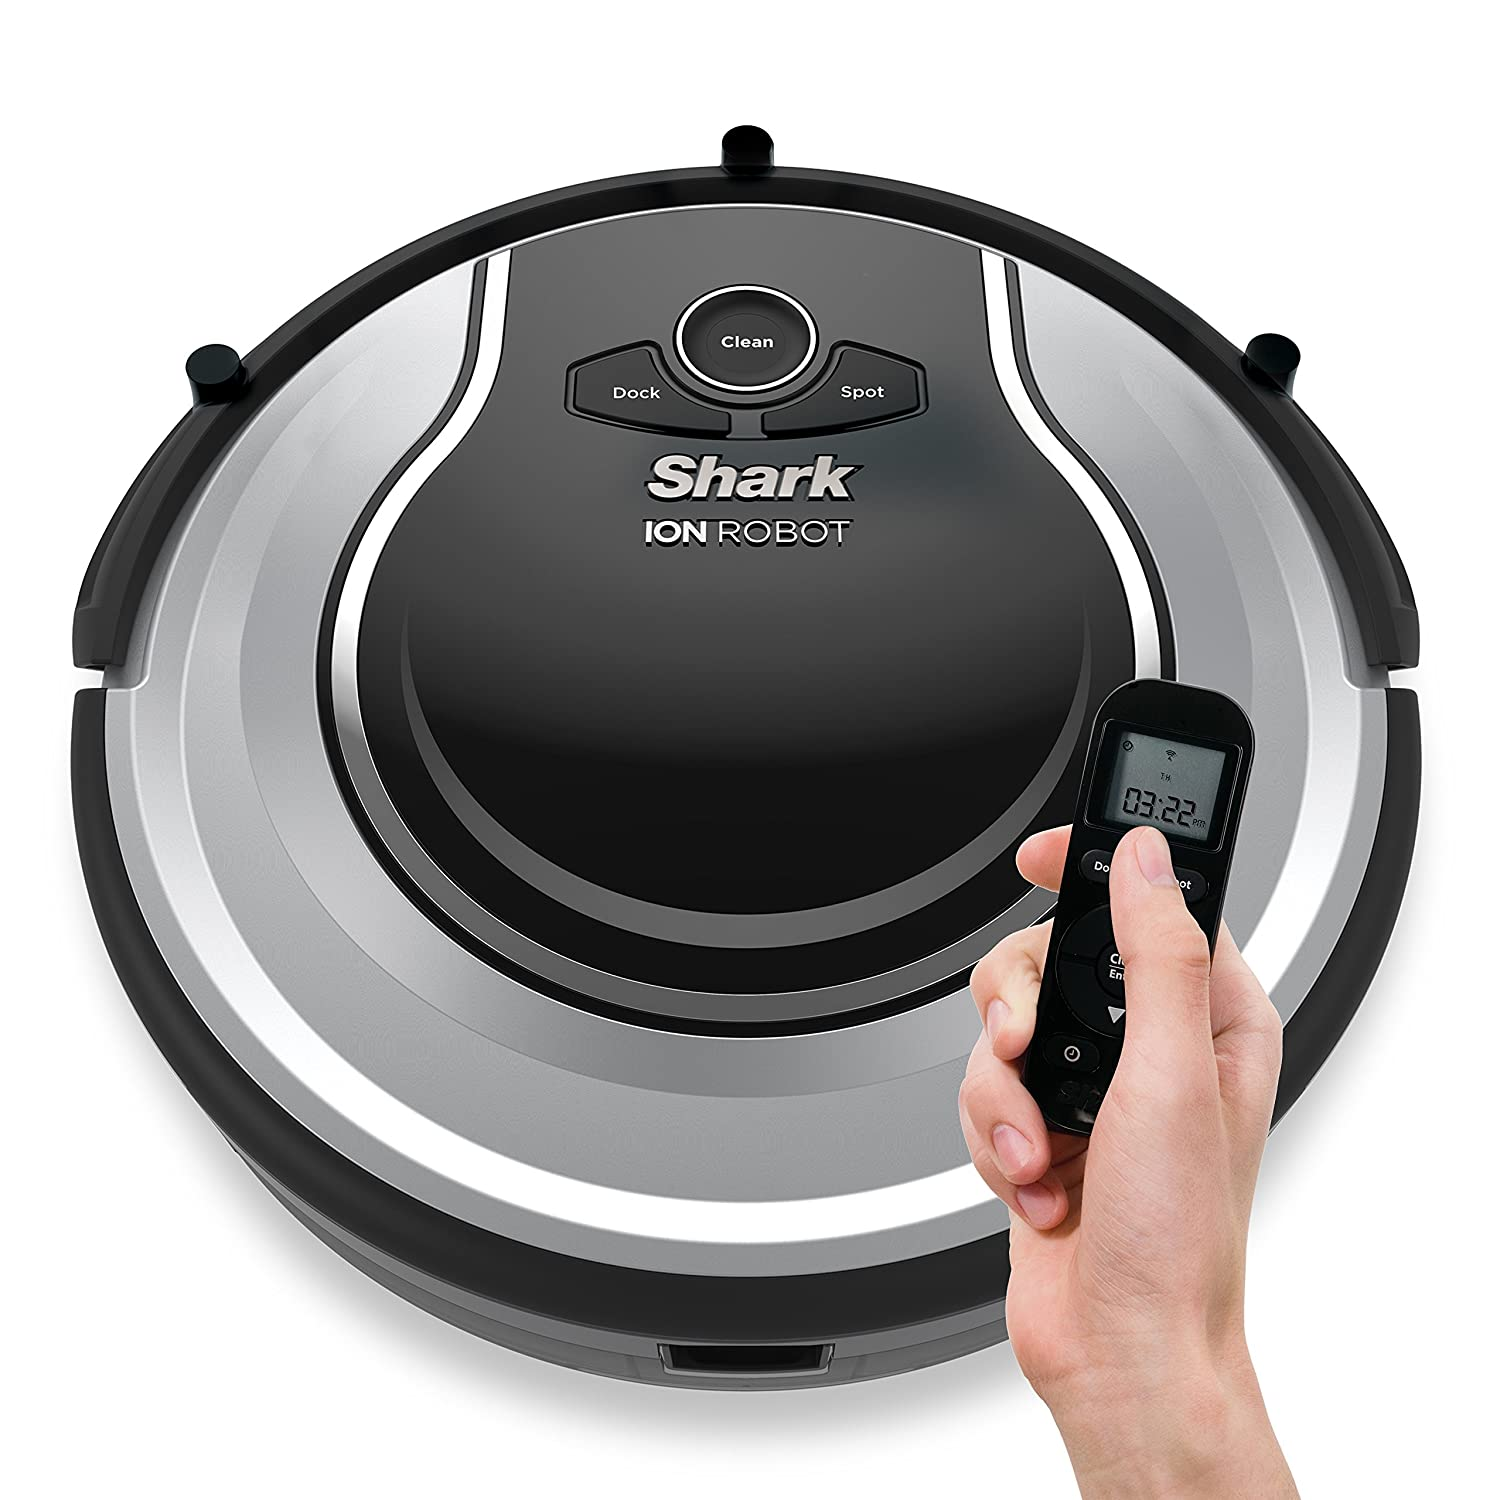 Amazon.com: Shark ION Robot Dual-Action Robot Vacuum Cleaner ...